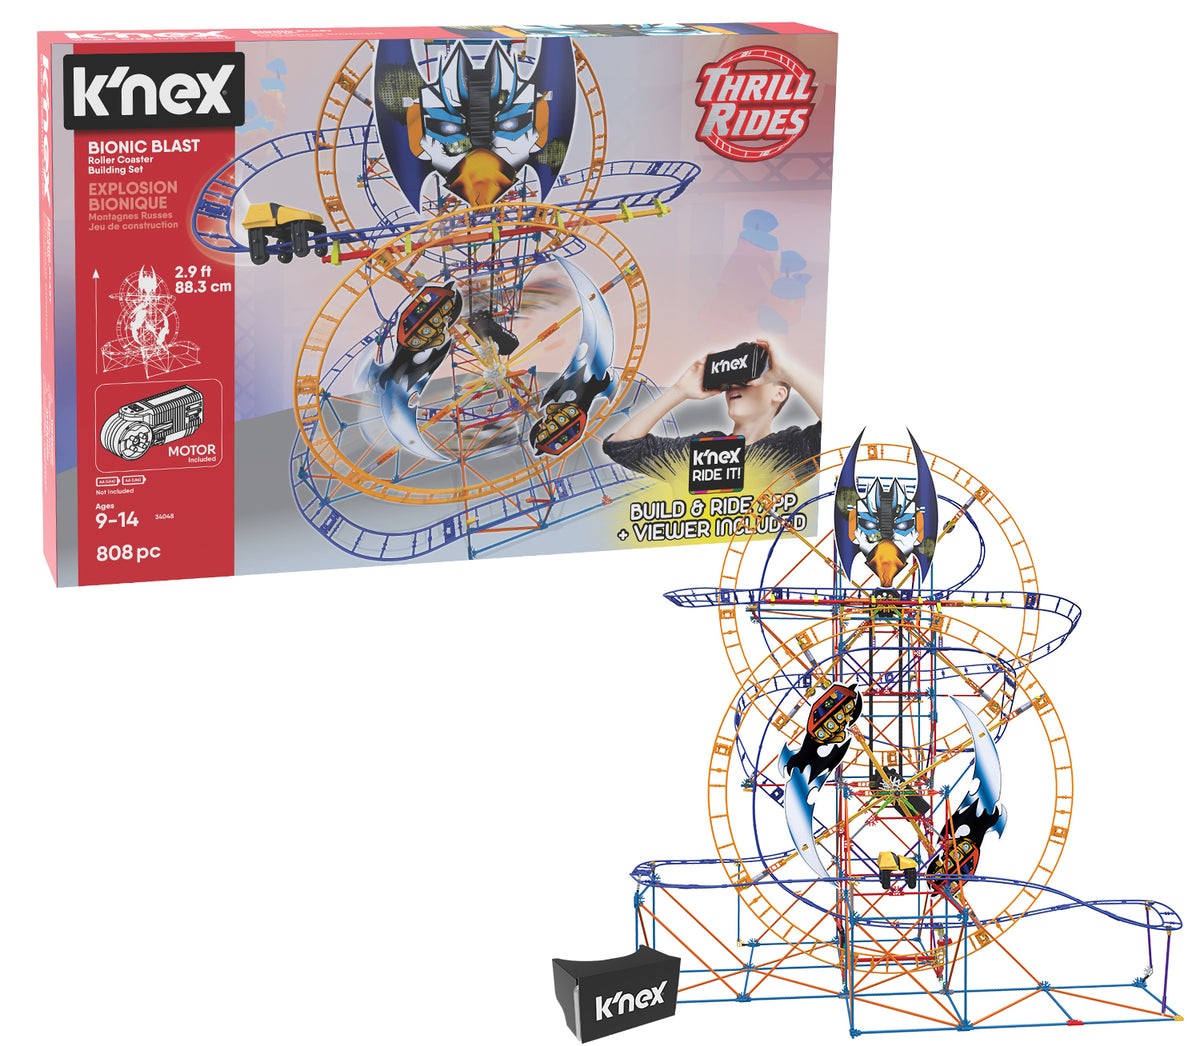 KNEX Thrill Rides Bionic Blast Roller Coaster Building Set with K'NEX Ride It APP